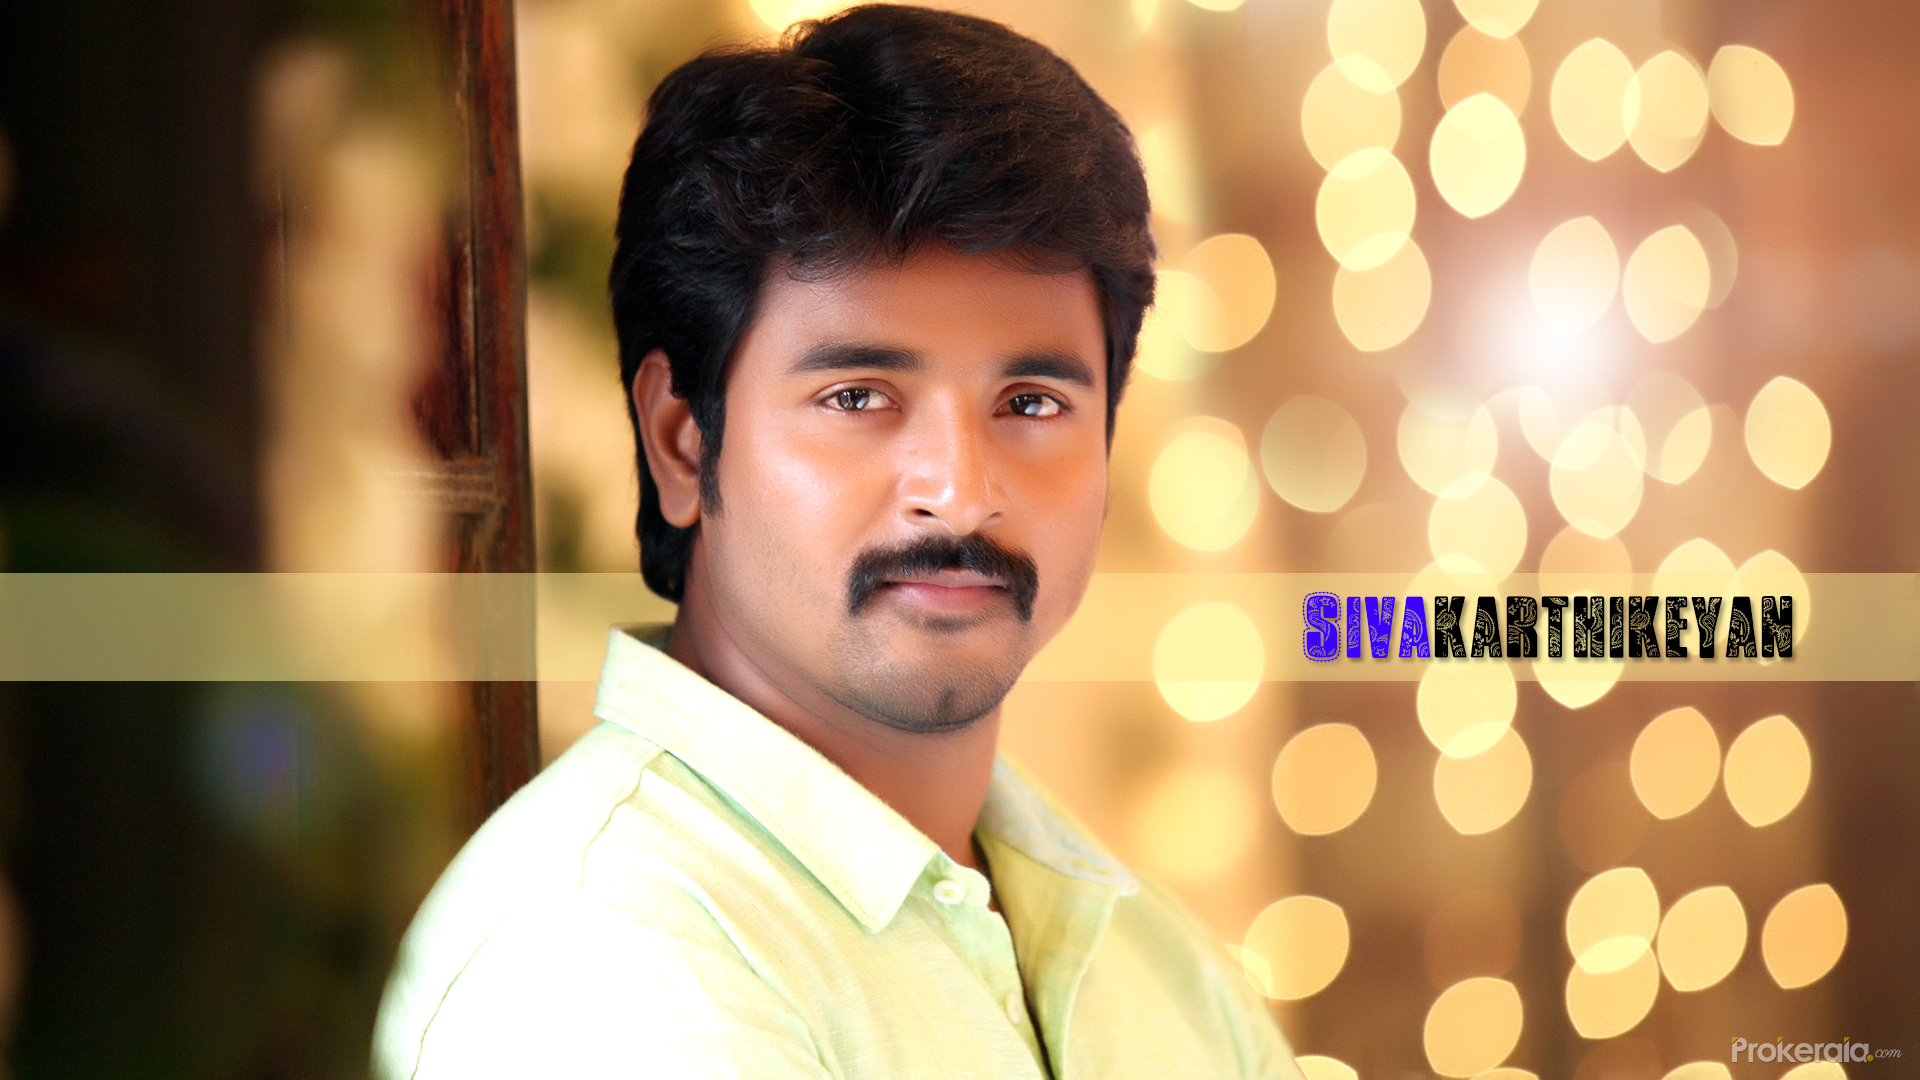 Image result for sivakarthikeyan images